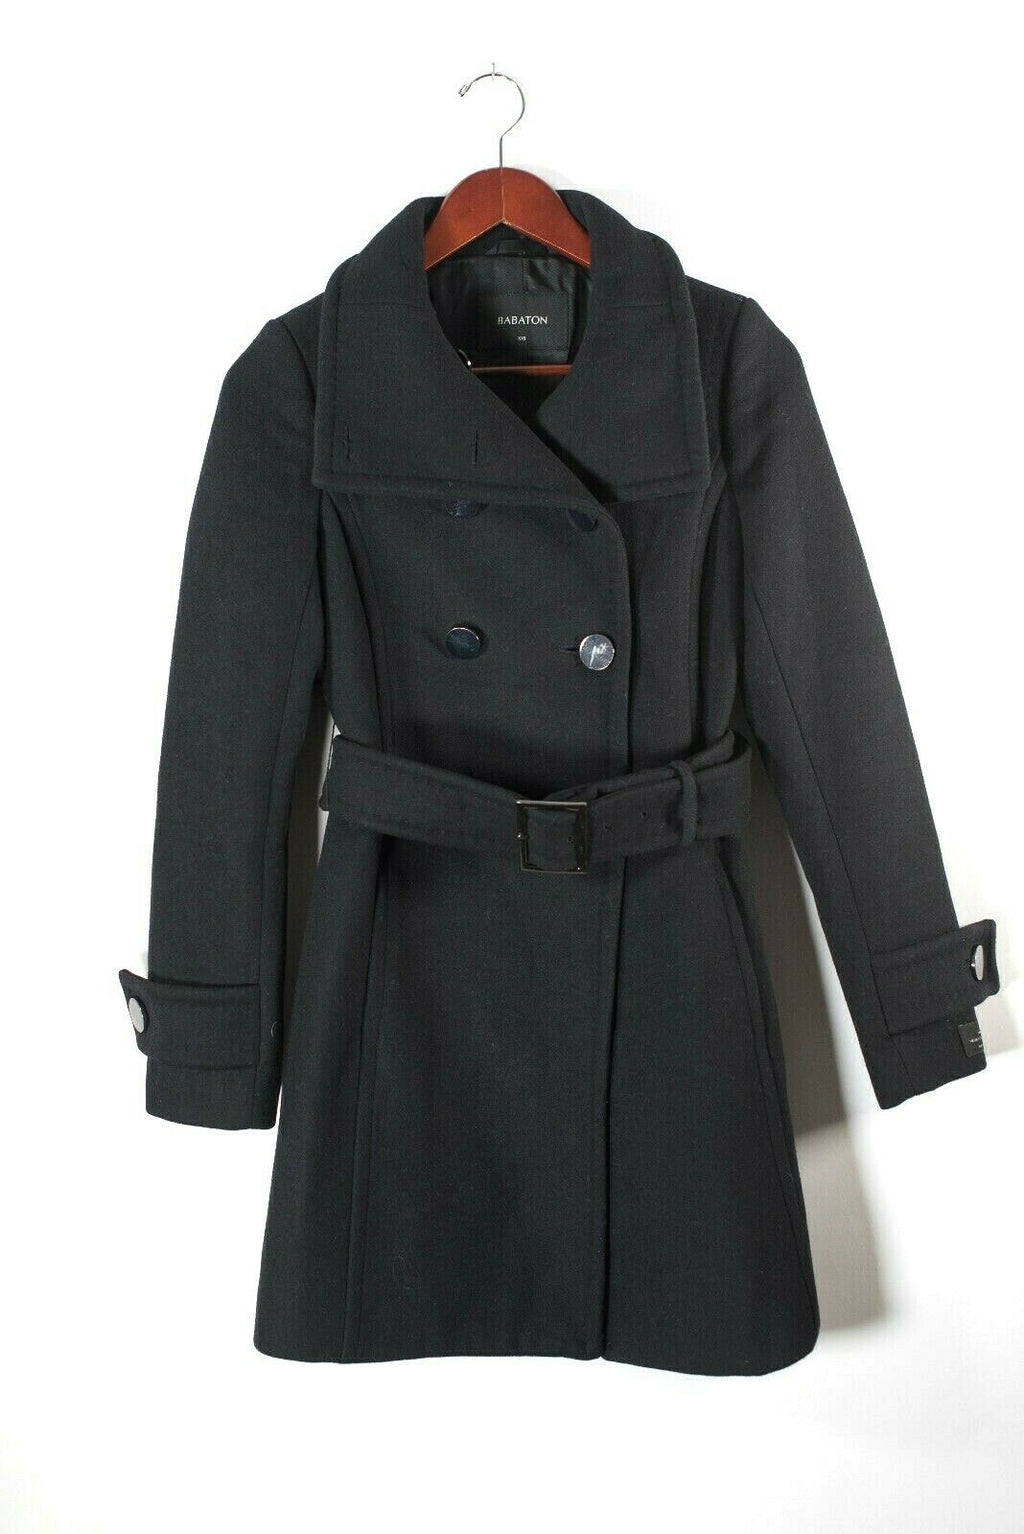 Aritzia Babaton Womens Size XXS Black Coat Bromley Military Belted Button Collar